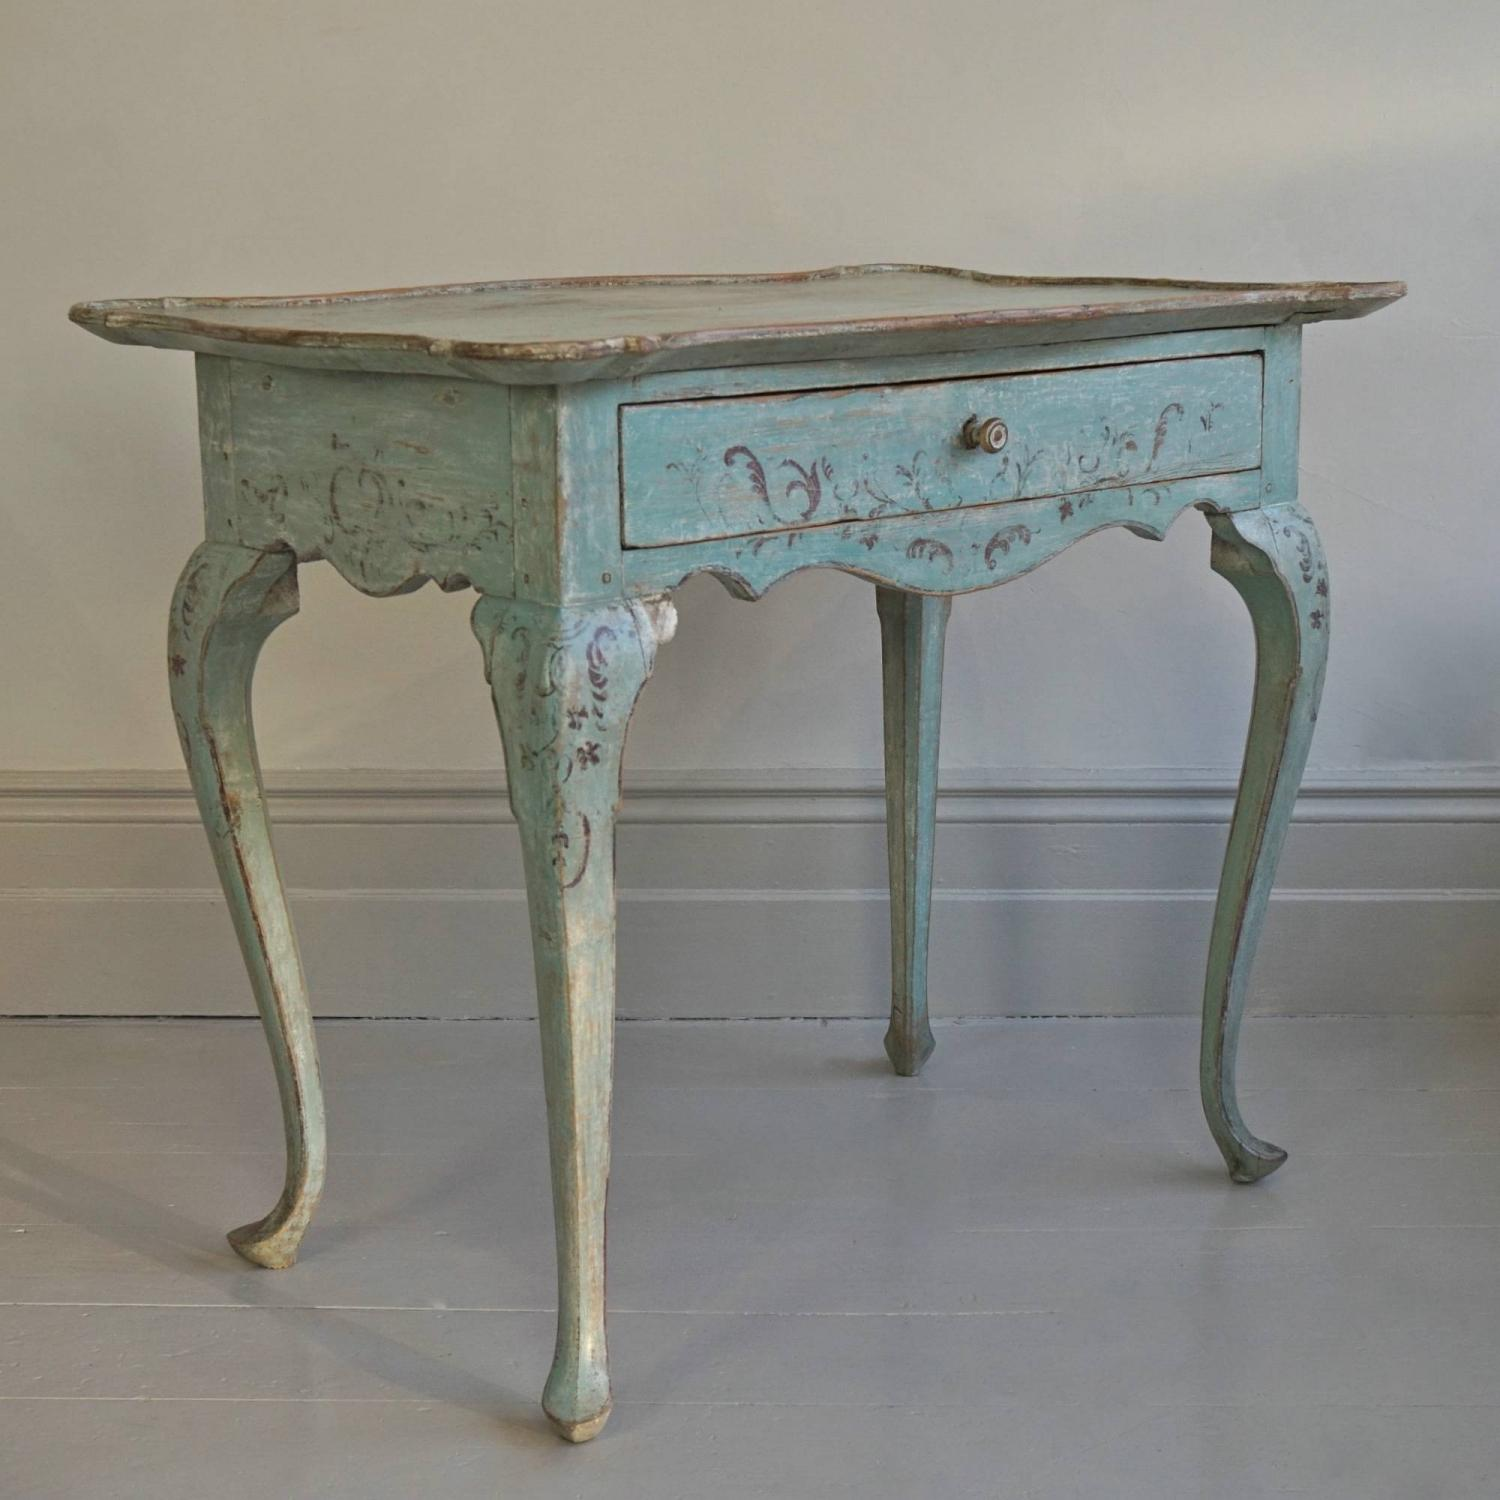 18TH CENTURY SWEDISH ROCOCO TRAY TABLE IN ORIGINAL COLOUR